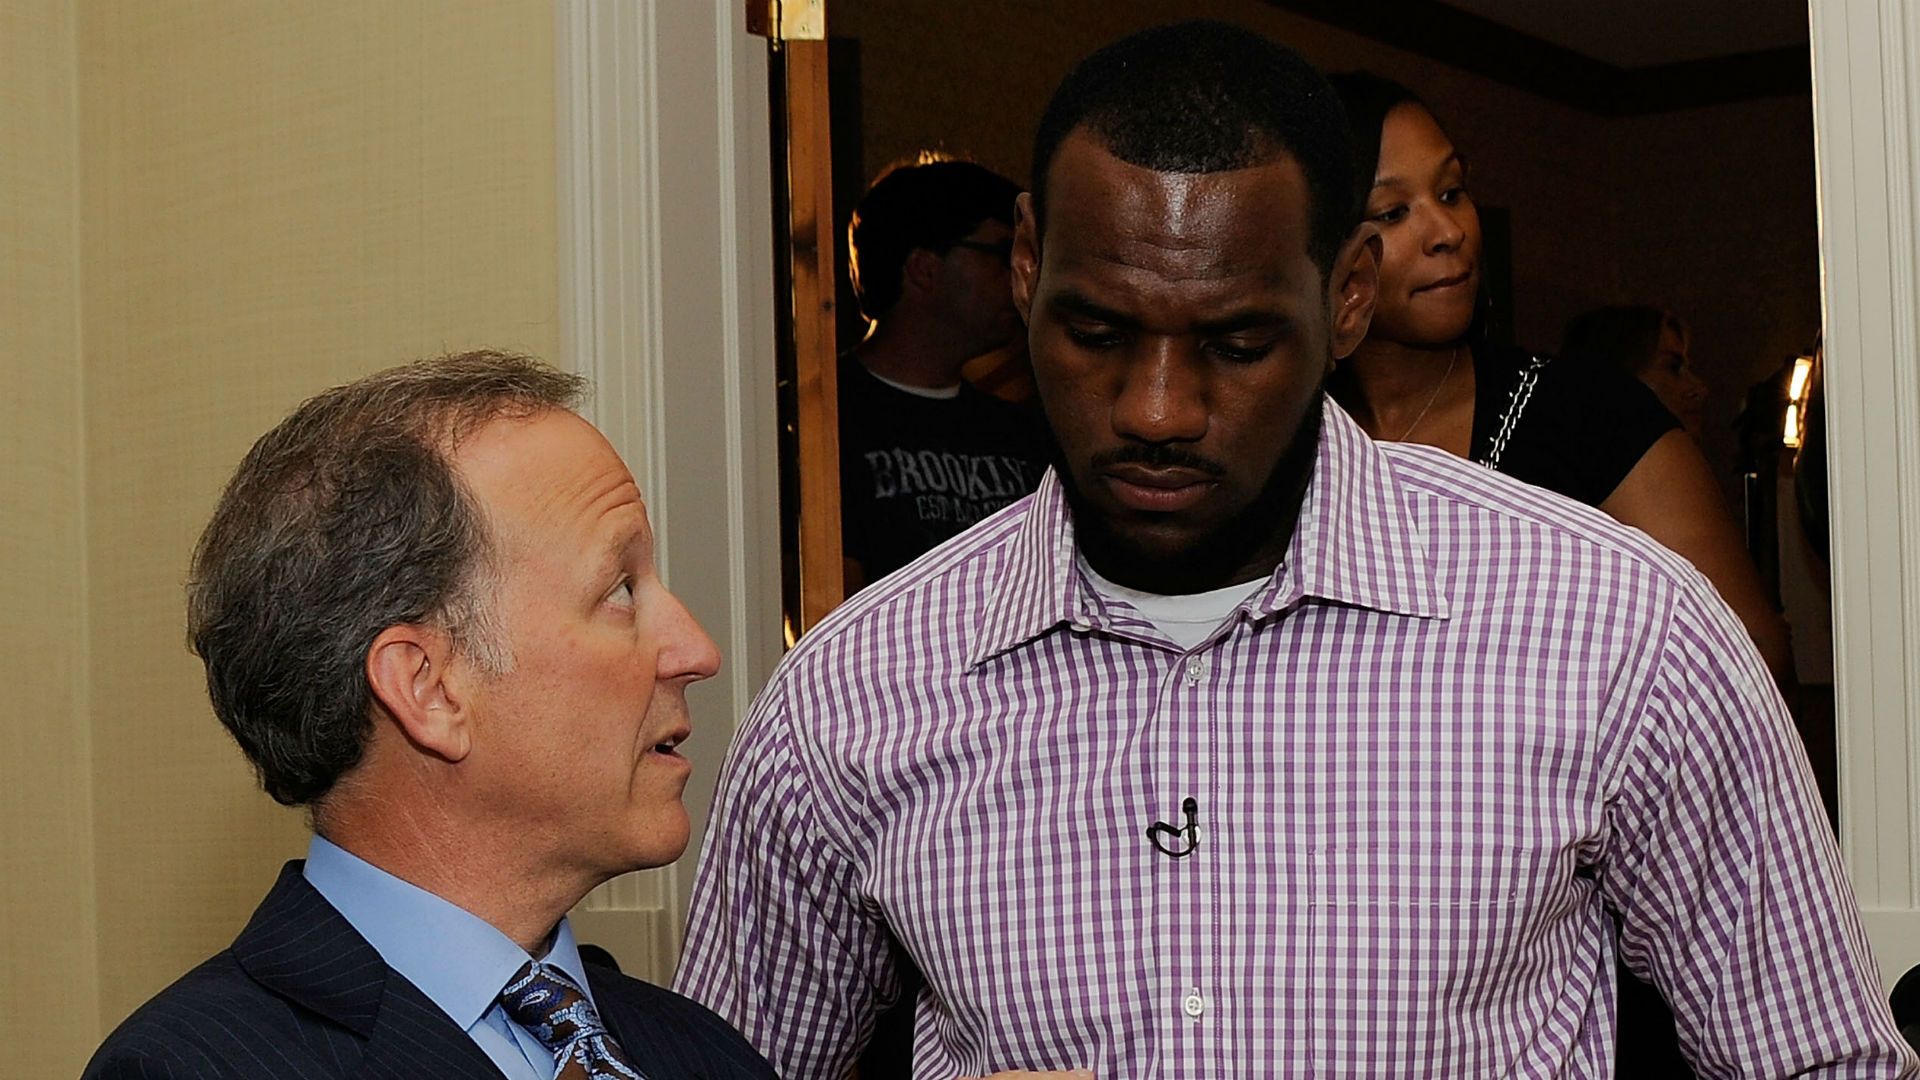 LeBron James' 'The Decision': Five things you may not know about infamous ESPN special